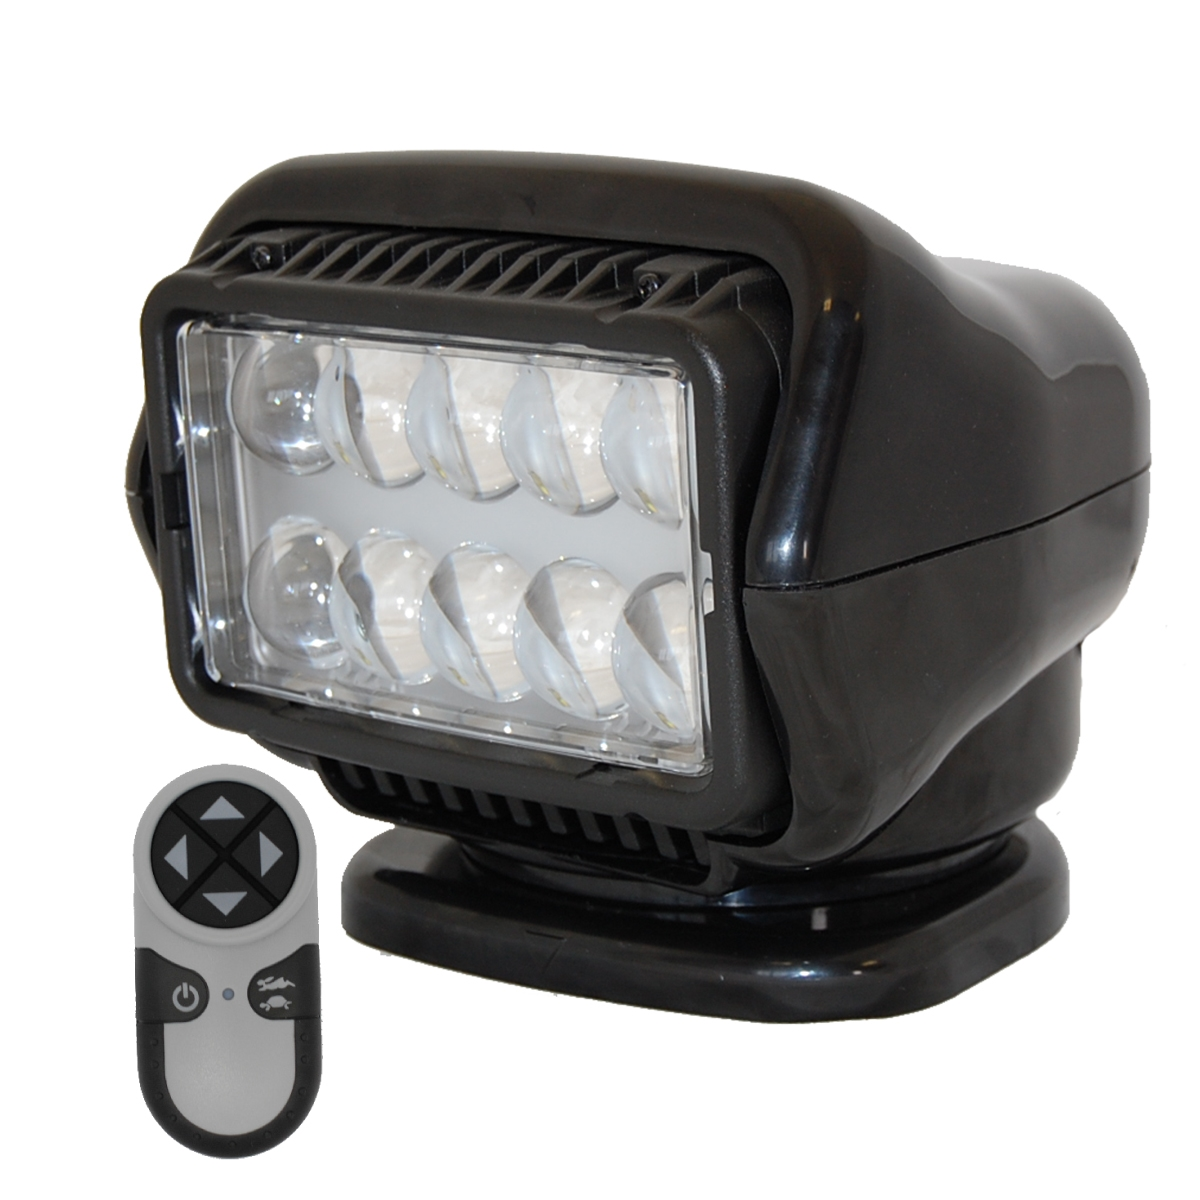 STRYKER - LED Remote Control Searchlight With Wireless Handheld Remote - Black 30514 Stryker Lights  sc 1 st  Versalift East Parts and Accessories Store & Featuring Golight Unity u0026 Superior Utility Search u0026 Spot lights for ...